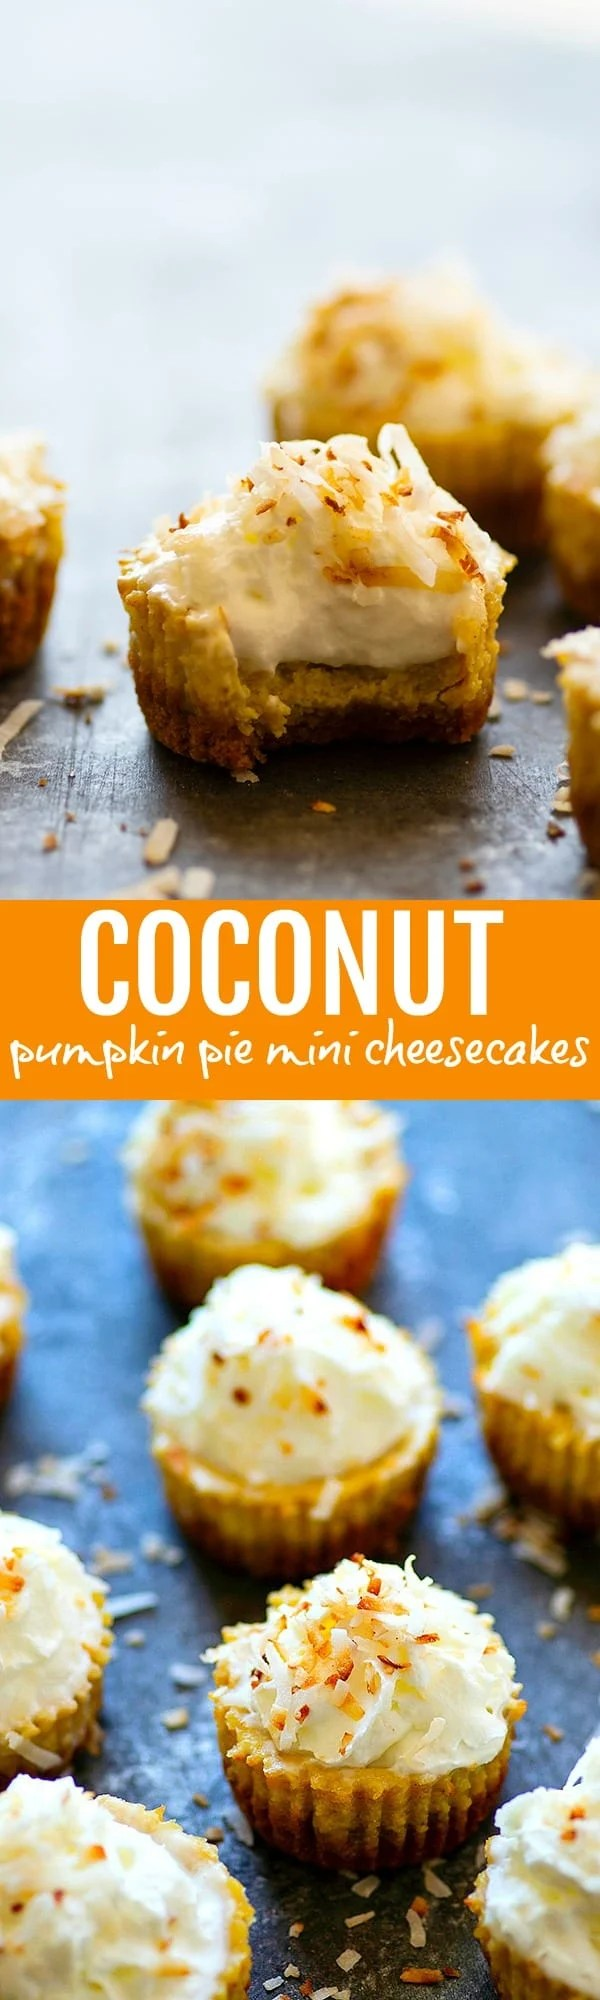 Coconut Pumpkin Pie Mini Cheesecakes - These mini cheesecakes have an incredibly silky pumpkin pie filling with a buttery graham cracker crust and tons of toasted coconut on top.--a perfect handheld Thanksgiving dessert!